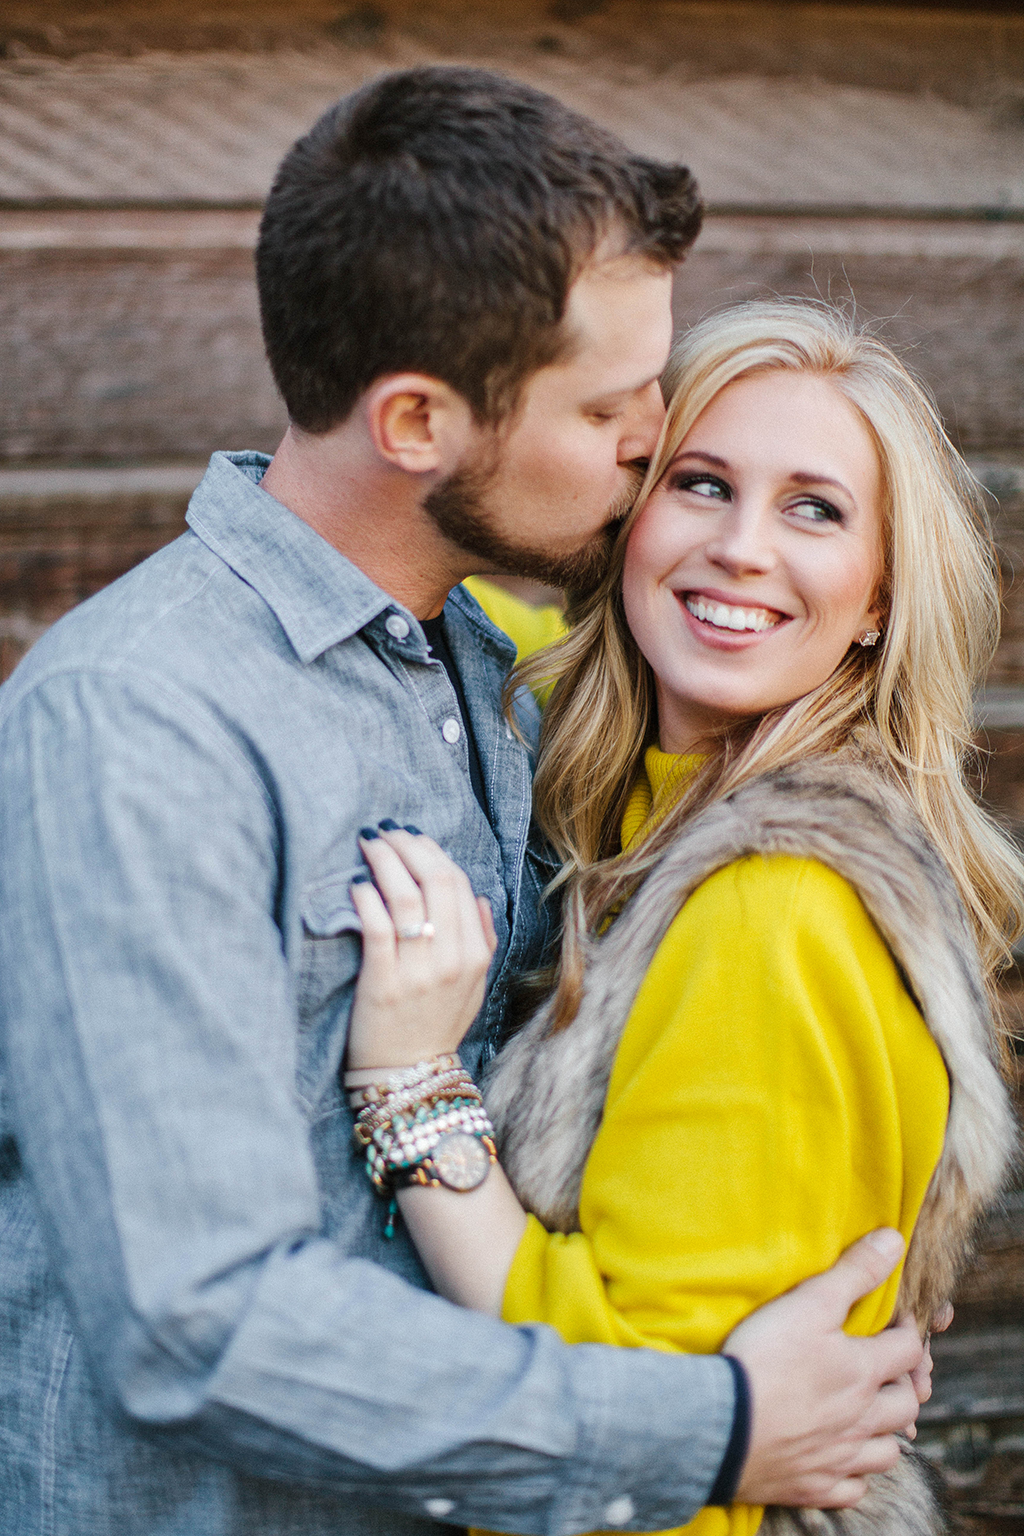 Brooke-&-Chip's-Engagement_-Kristen-Curette-Photography-0069